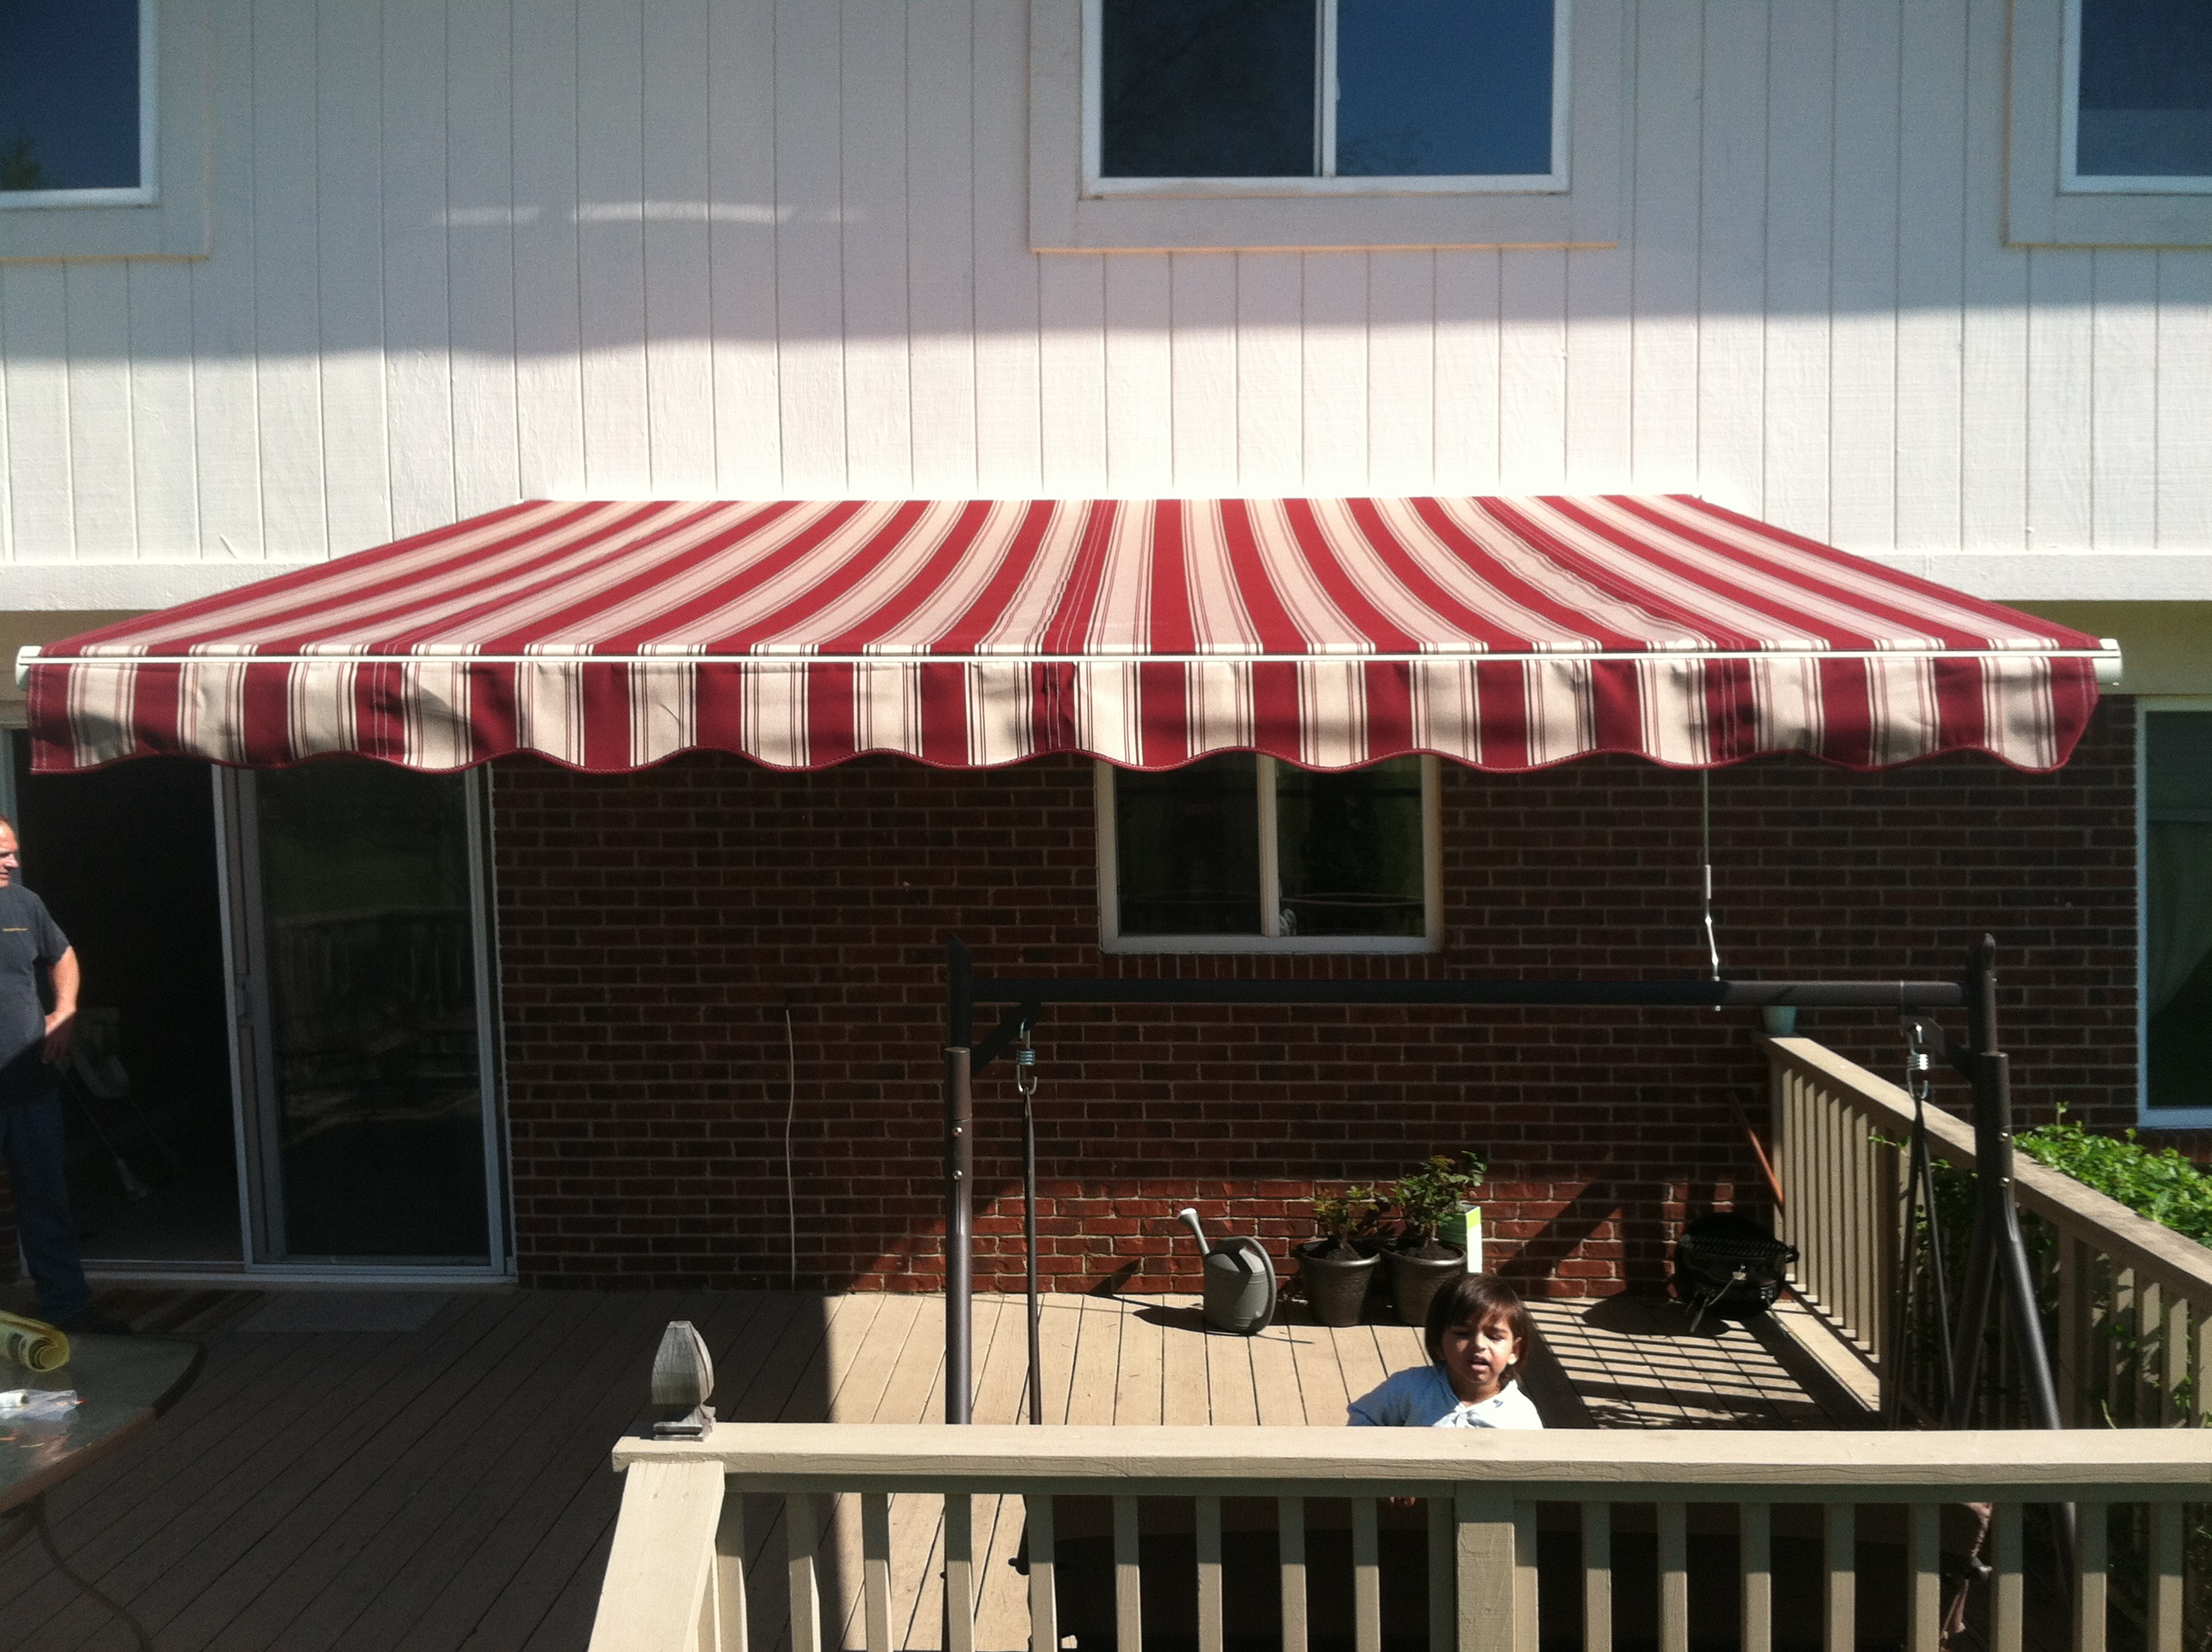 St. Clair Awning Red Brick Color